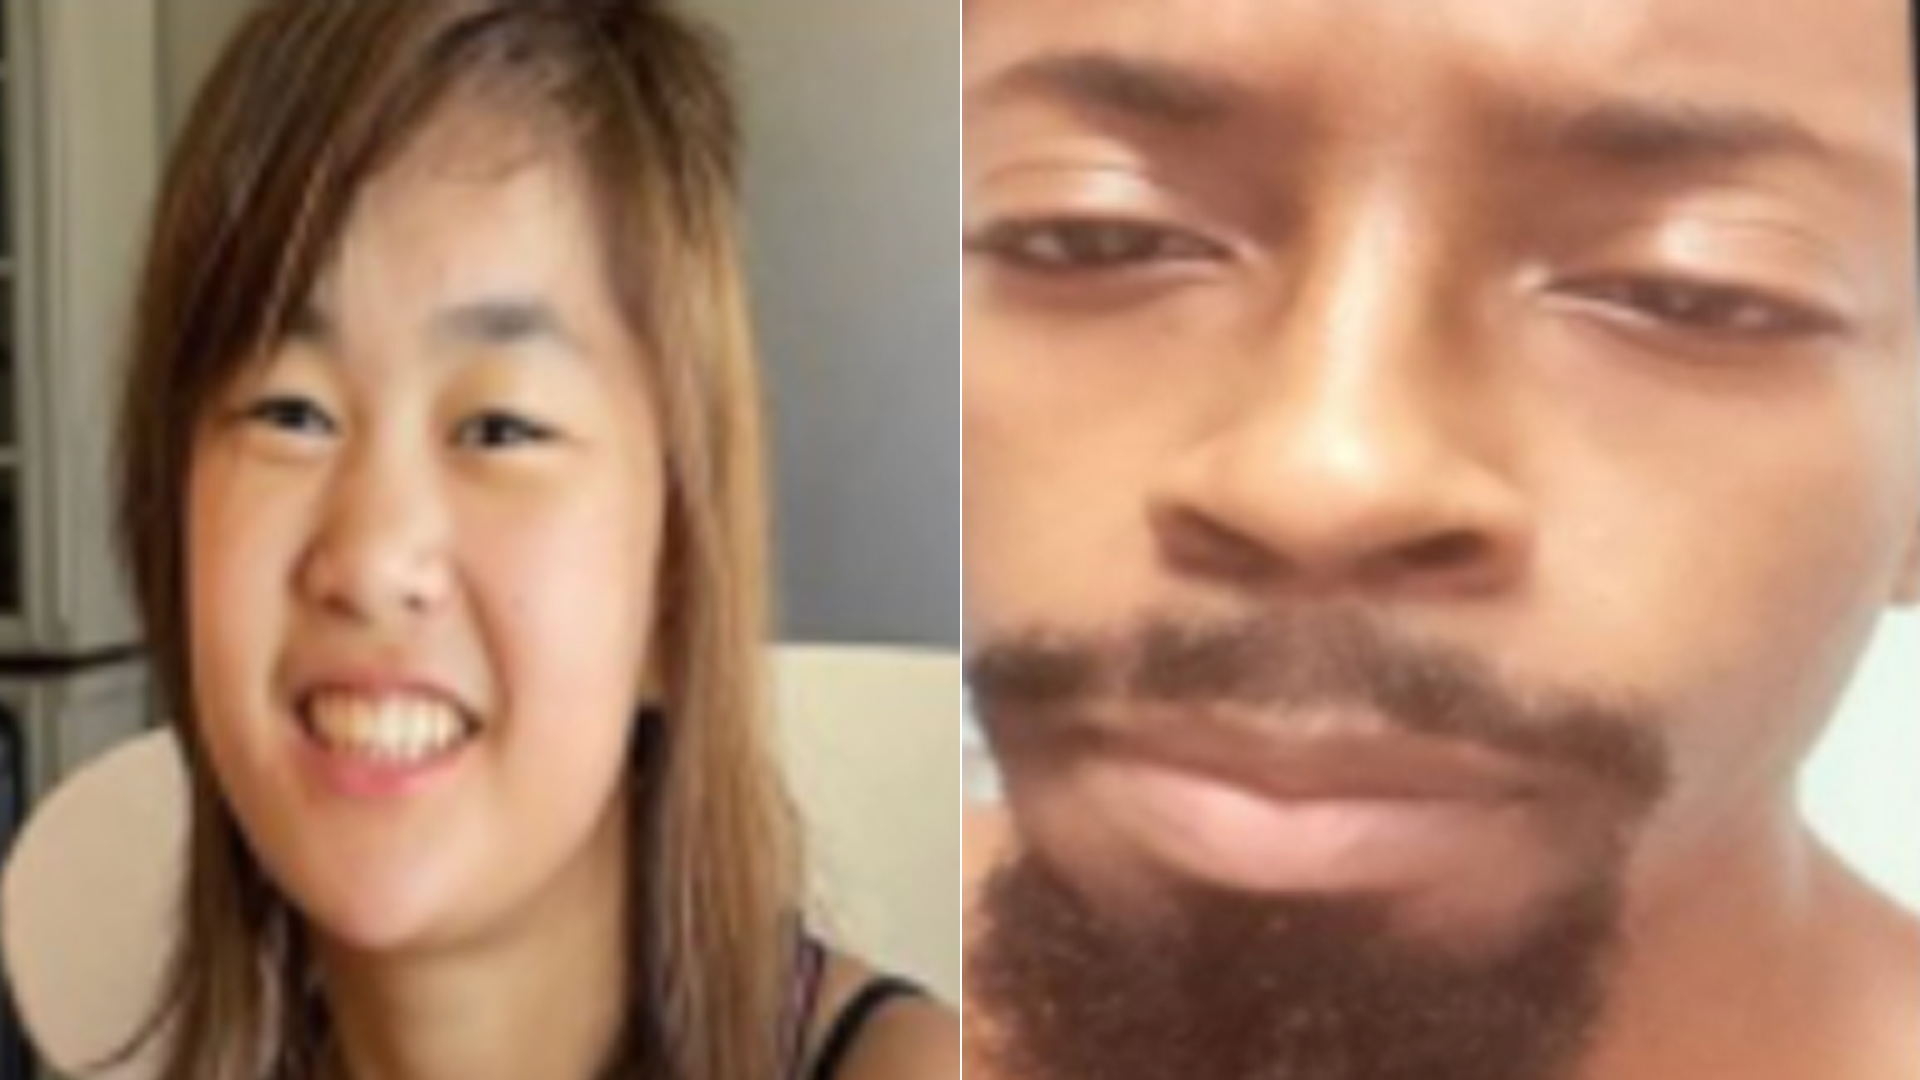 Phoebe Carreon and Nathan Williams are shown in photos provided by the Orange County Sheriff's Department on Aug. 27, 2021.